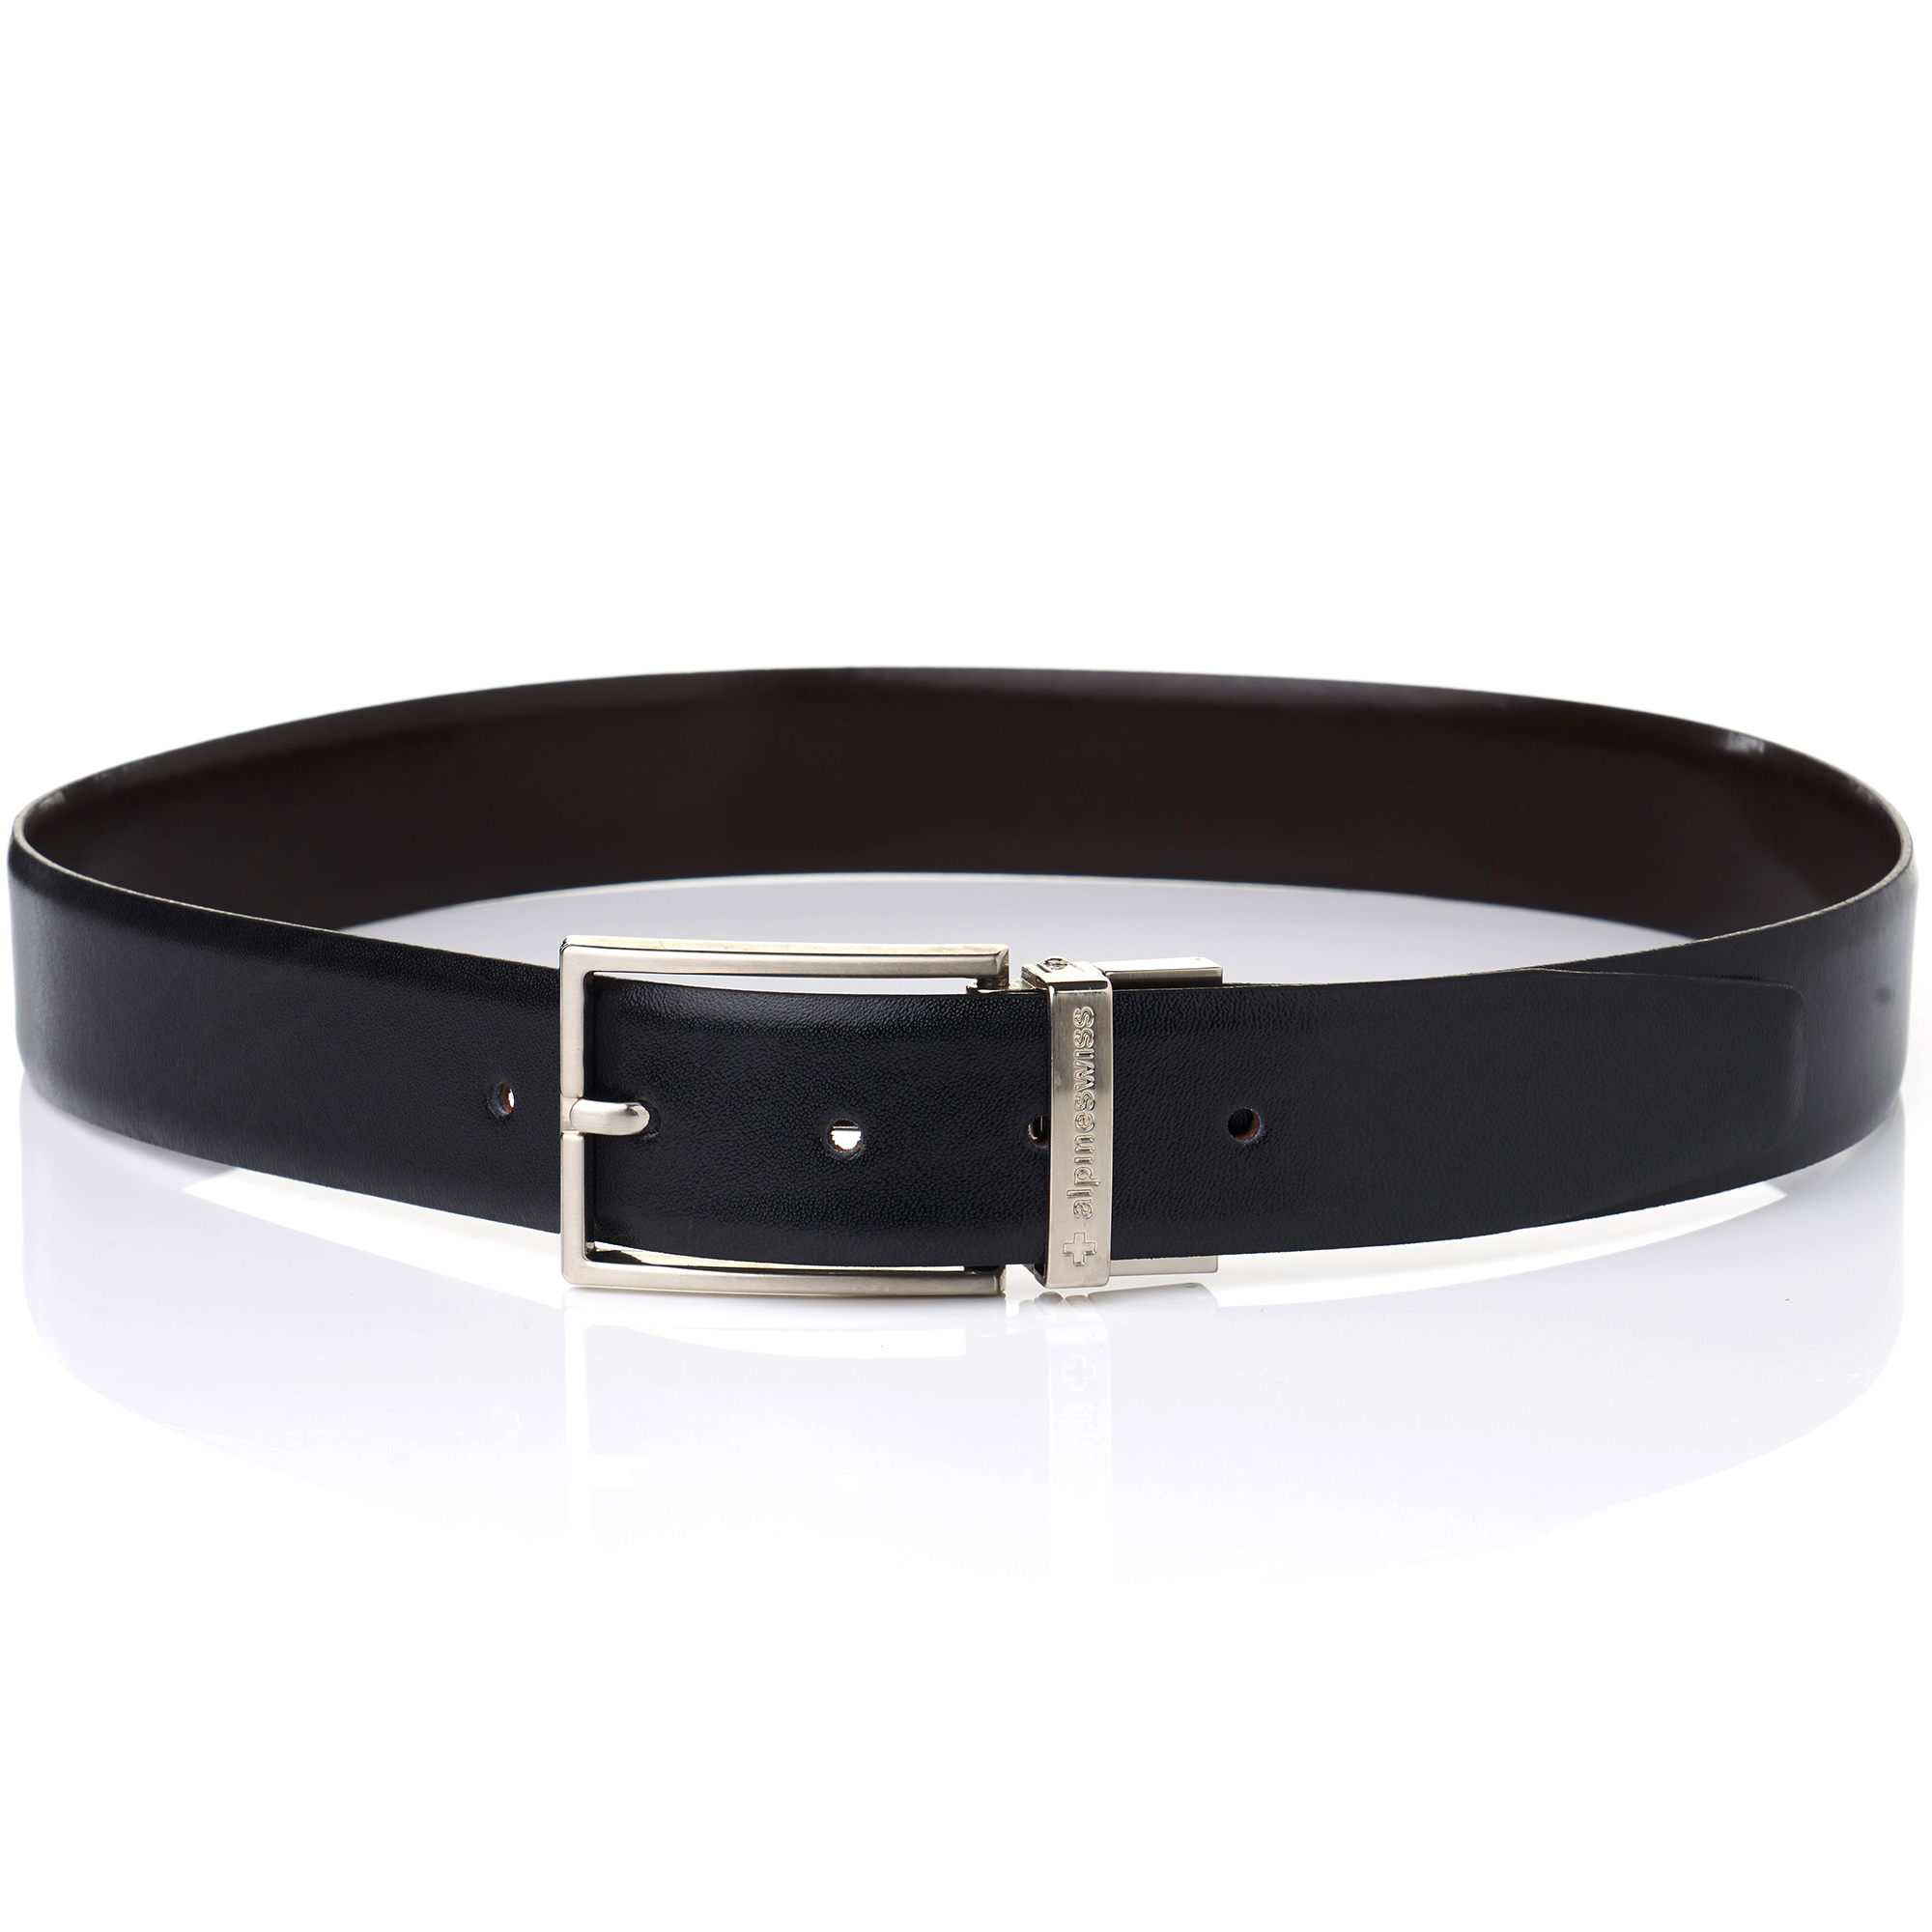 Alpine-Swiss-Mens-Dress-Belt-Reversible-Black-Brown-Leather-Imported-from-Spain thumbnail 17